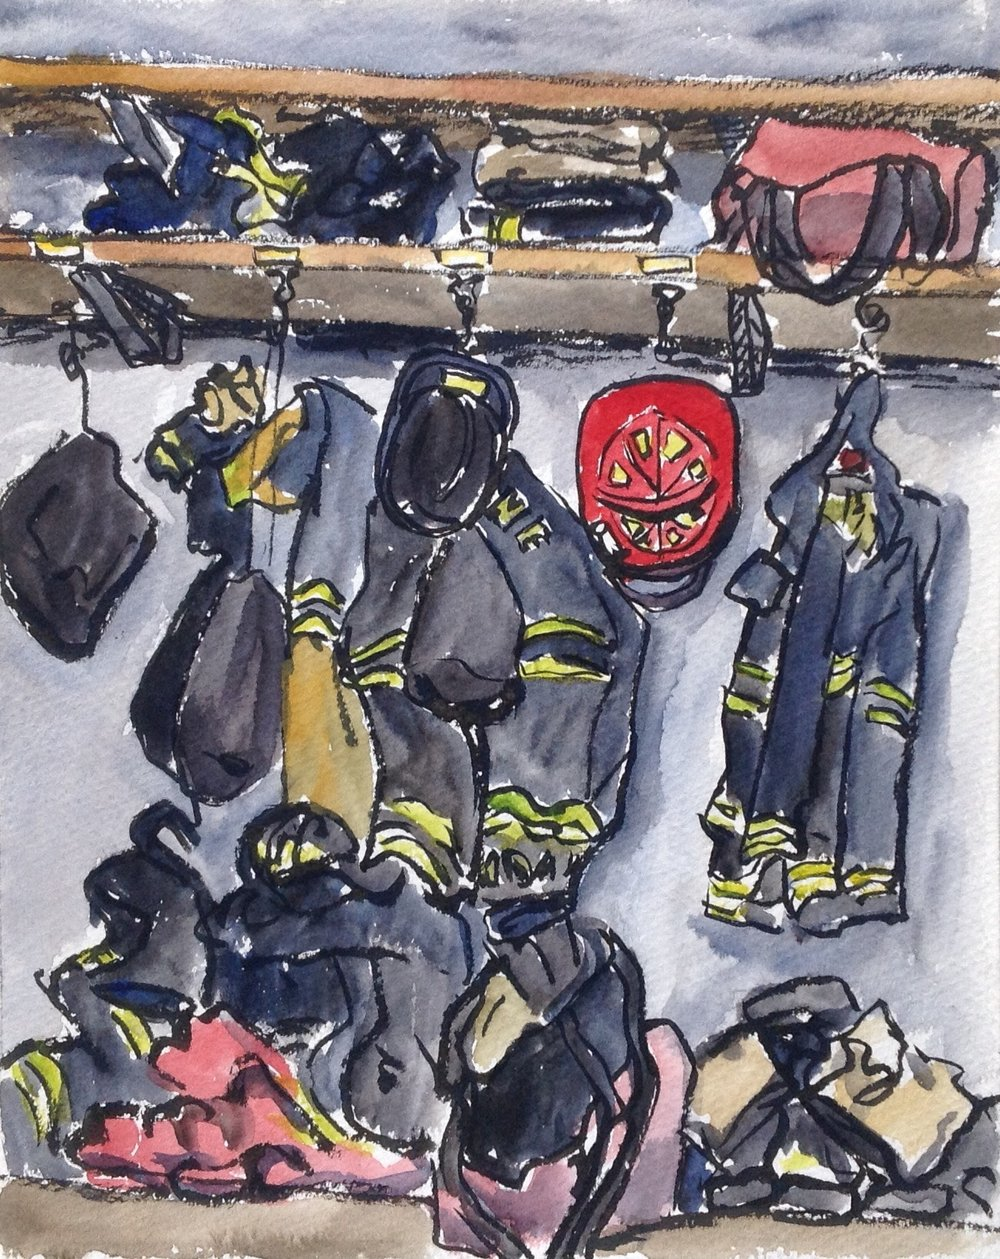 Firefighter Jackets.jpg